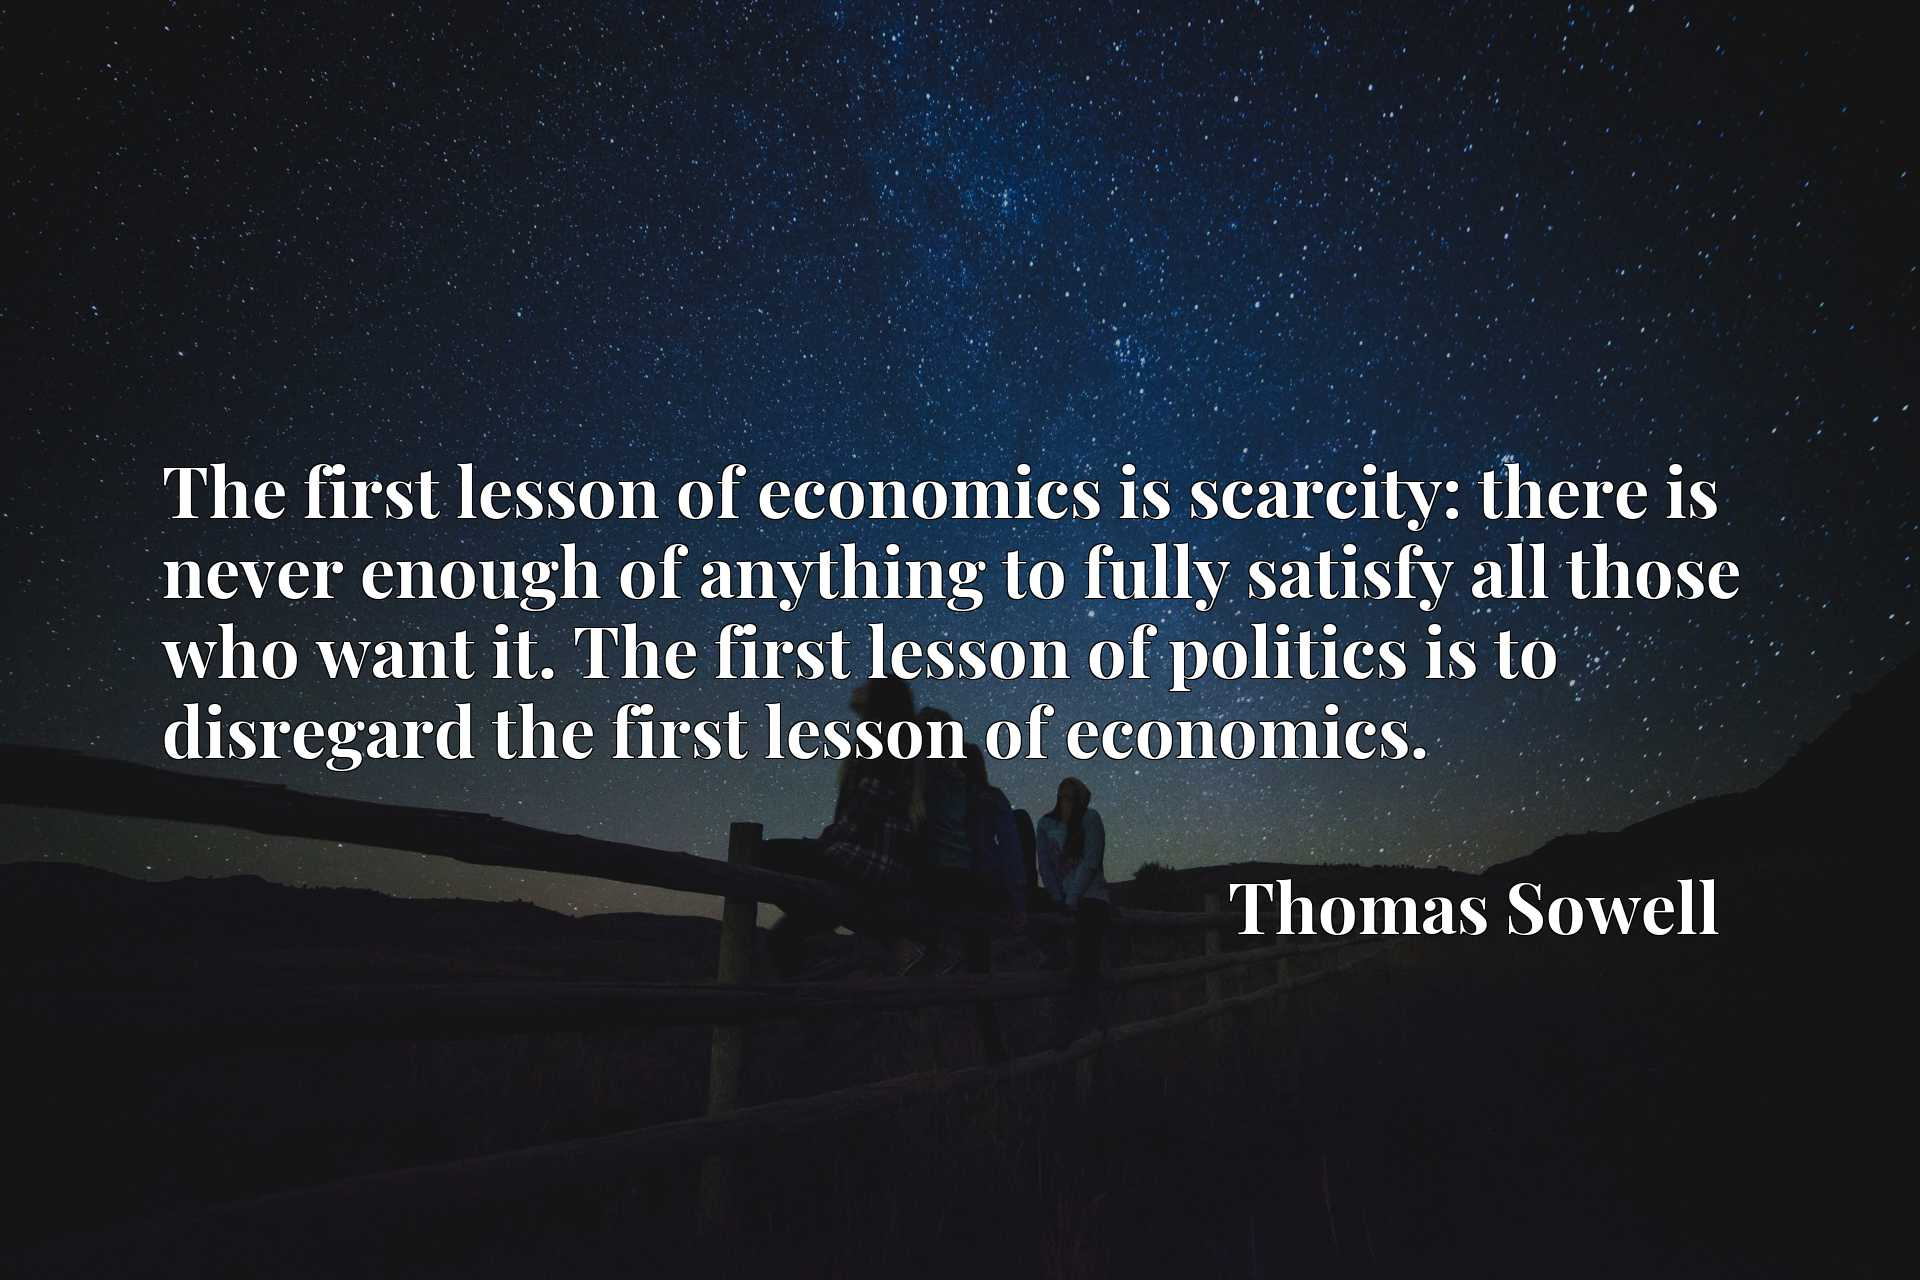 The first lesson of economics is scarcity: there is never enough of anything to fully satisfy all those who want it. The first lesson of politics is to disregard the first lesson of economics.